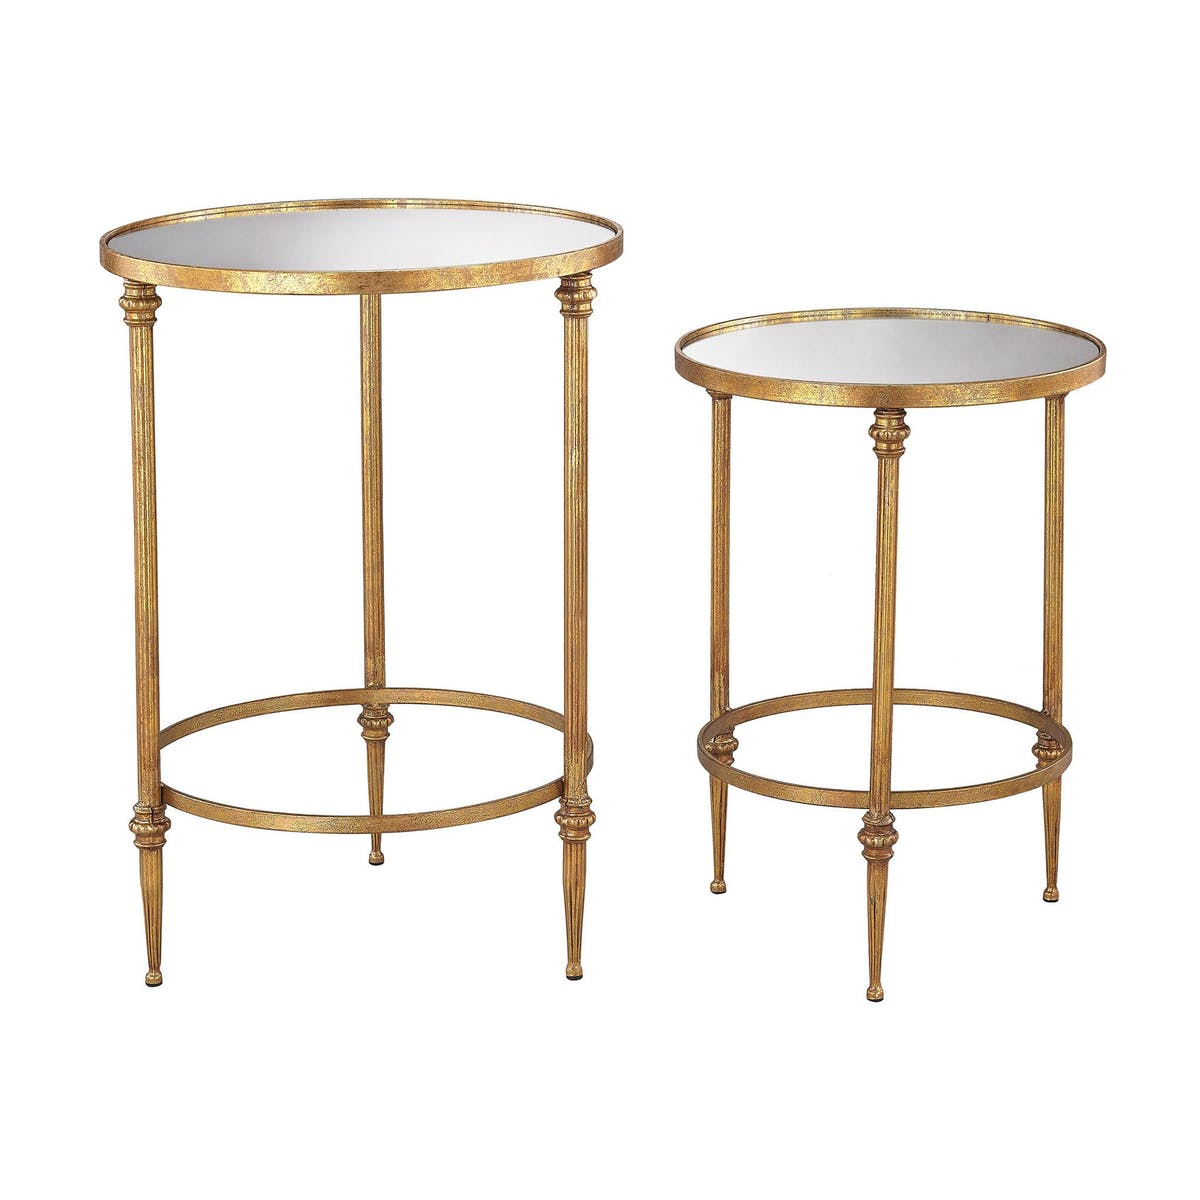 sterling industries alcazar accent tables antique gold and mirror mirrored table tap expand pier outdoor cushions unusual coffee metal legs small chairs dining linens oak lamp